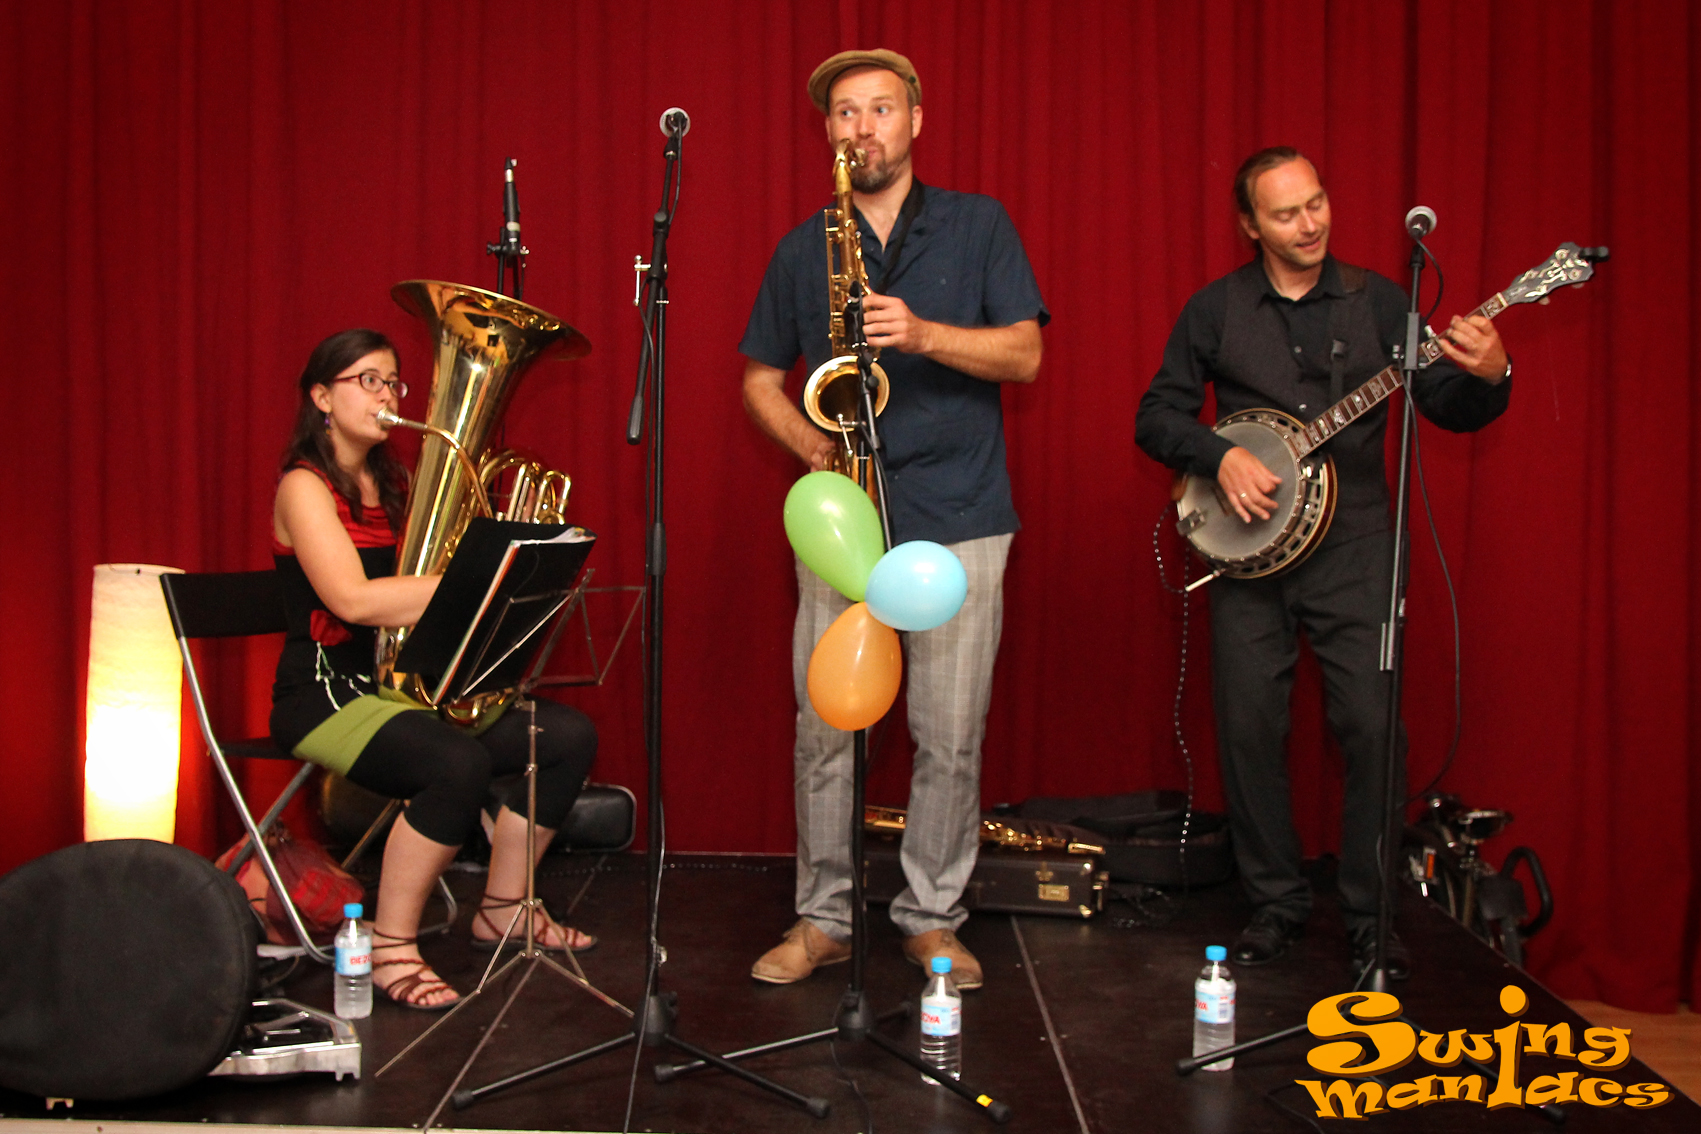 Fotos swing maniacs swing a barcelona apr n a ballar for Swing gracia